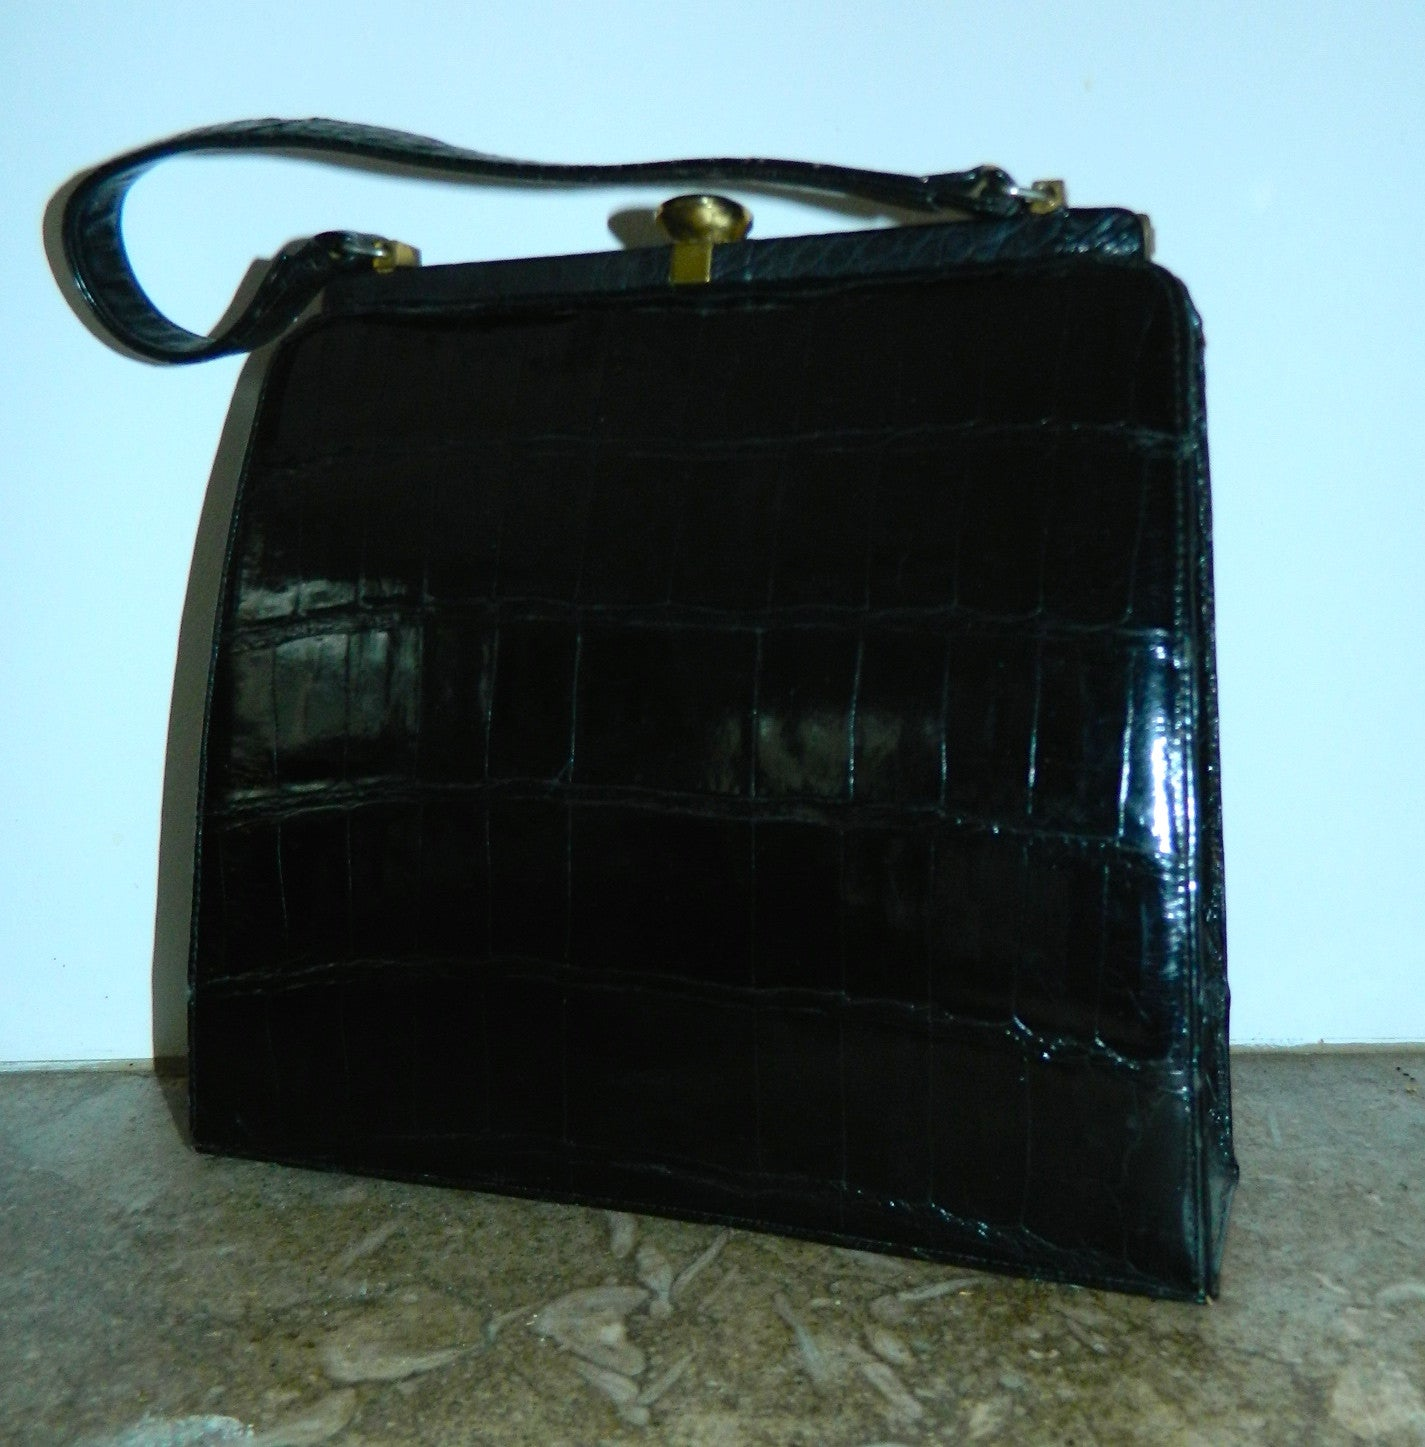 vintage black alligator handbag 1960s Bellestone gator purse